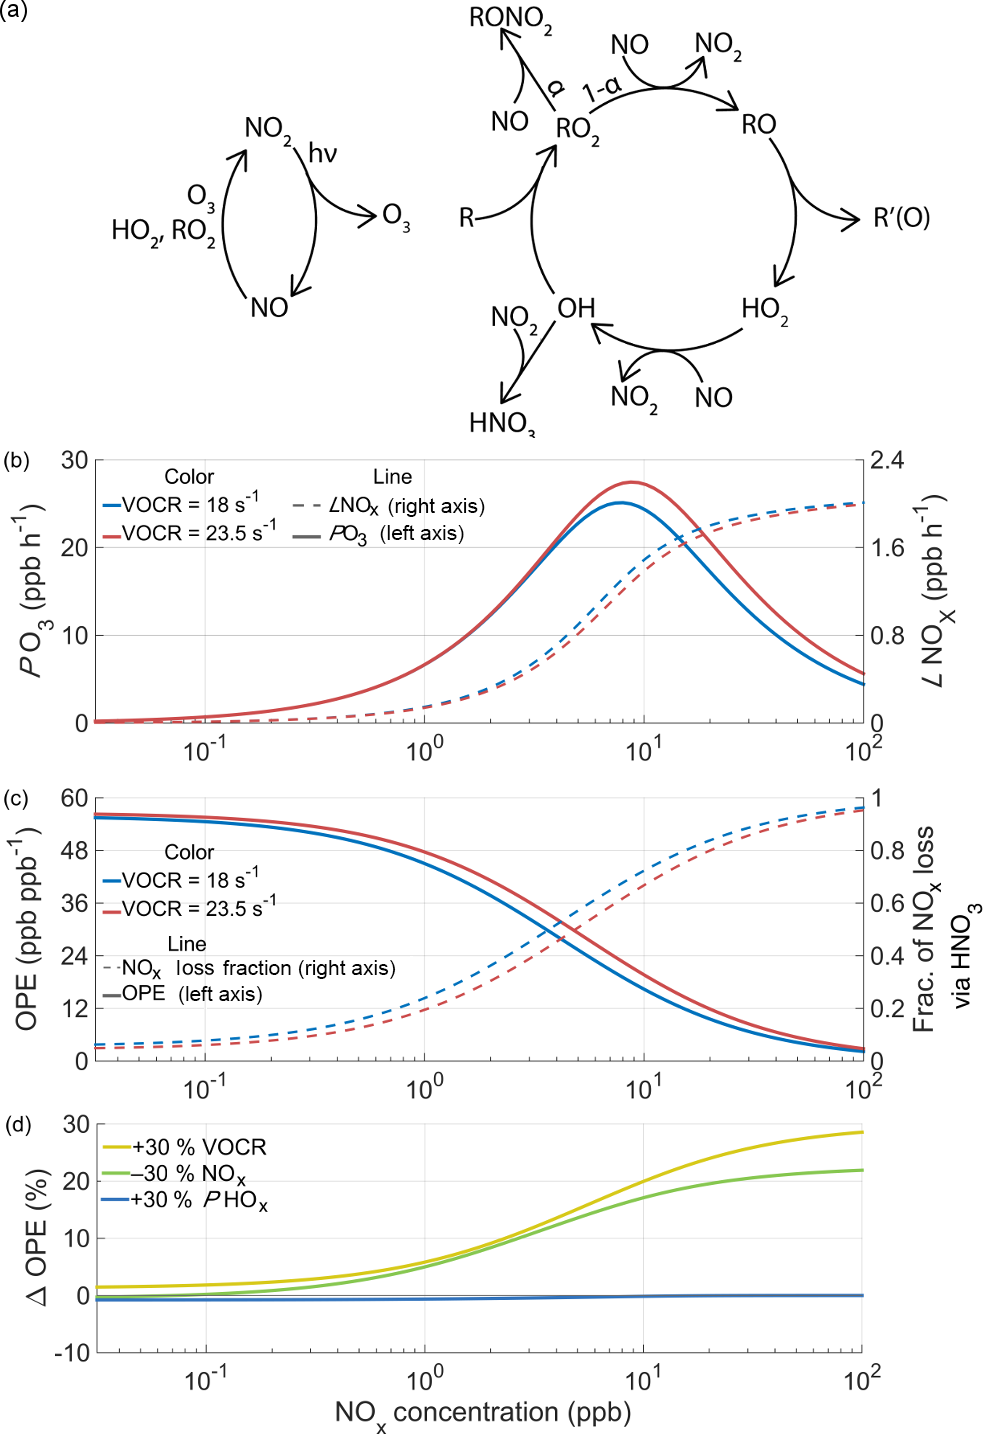 ACP - Effects Of Temperature-dependent NOx Emissions On Continental Ozone  Production